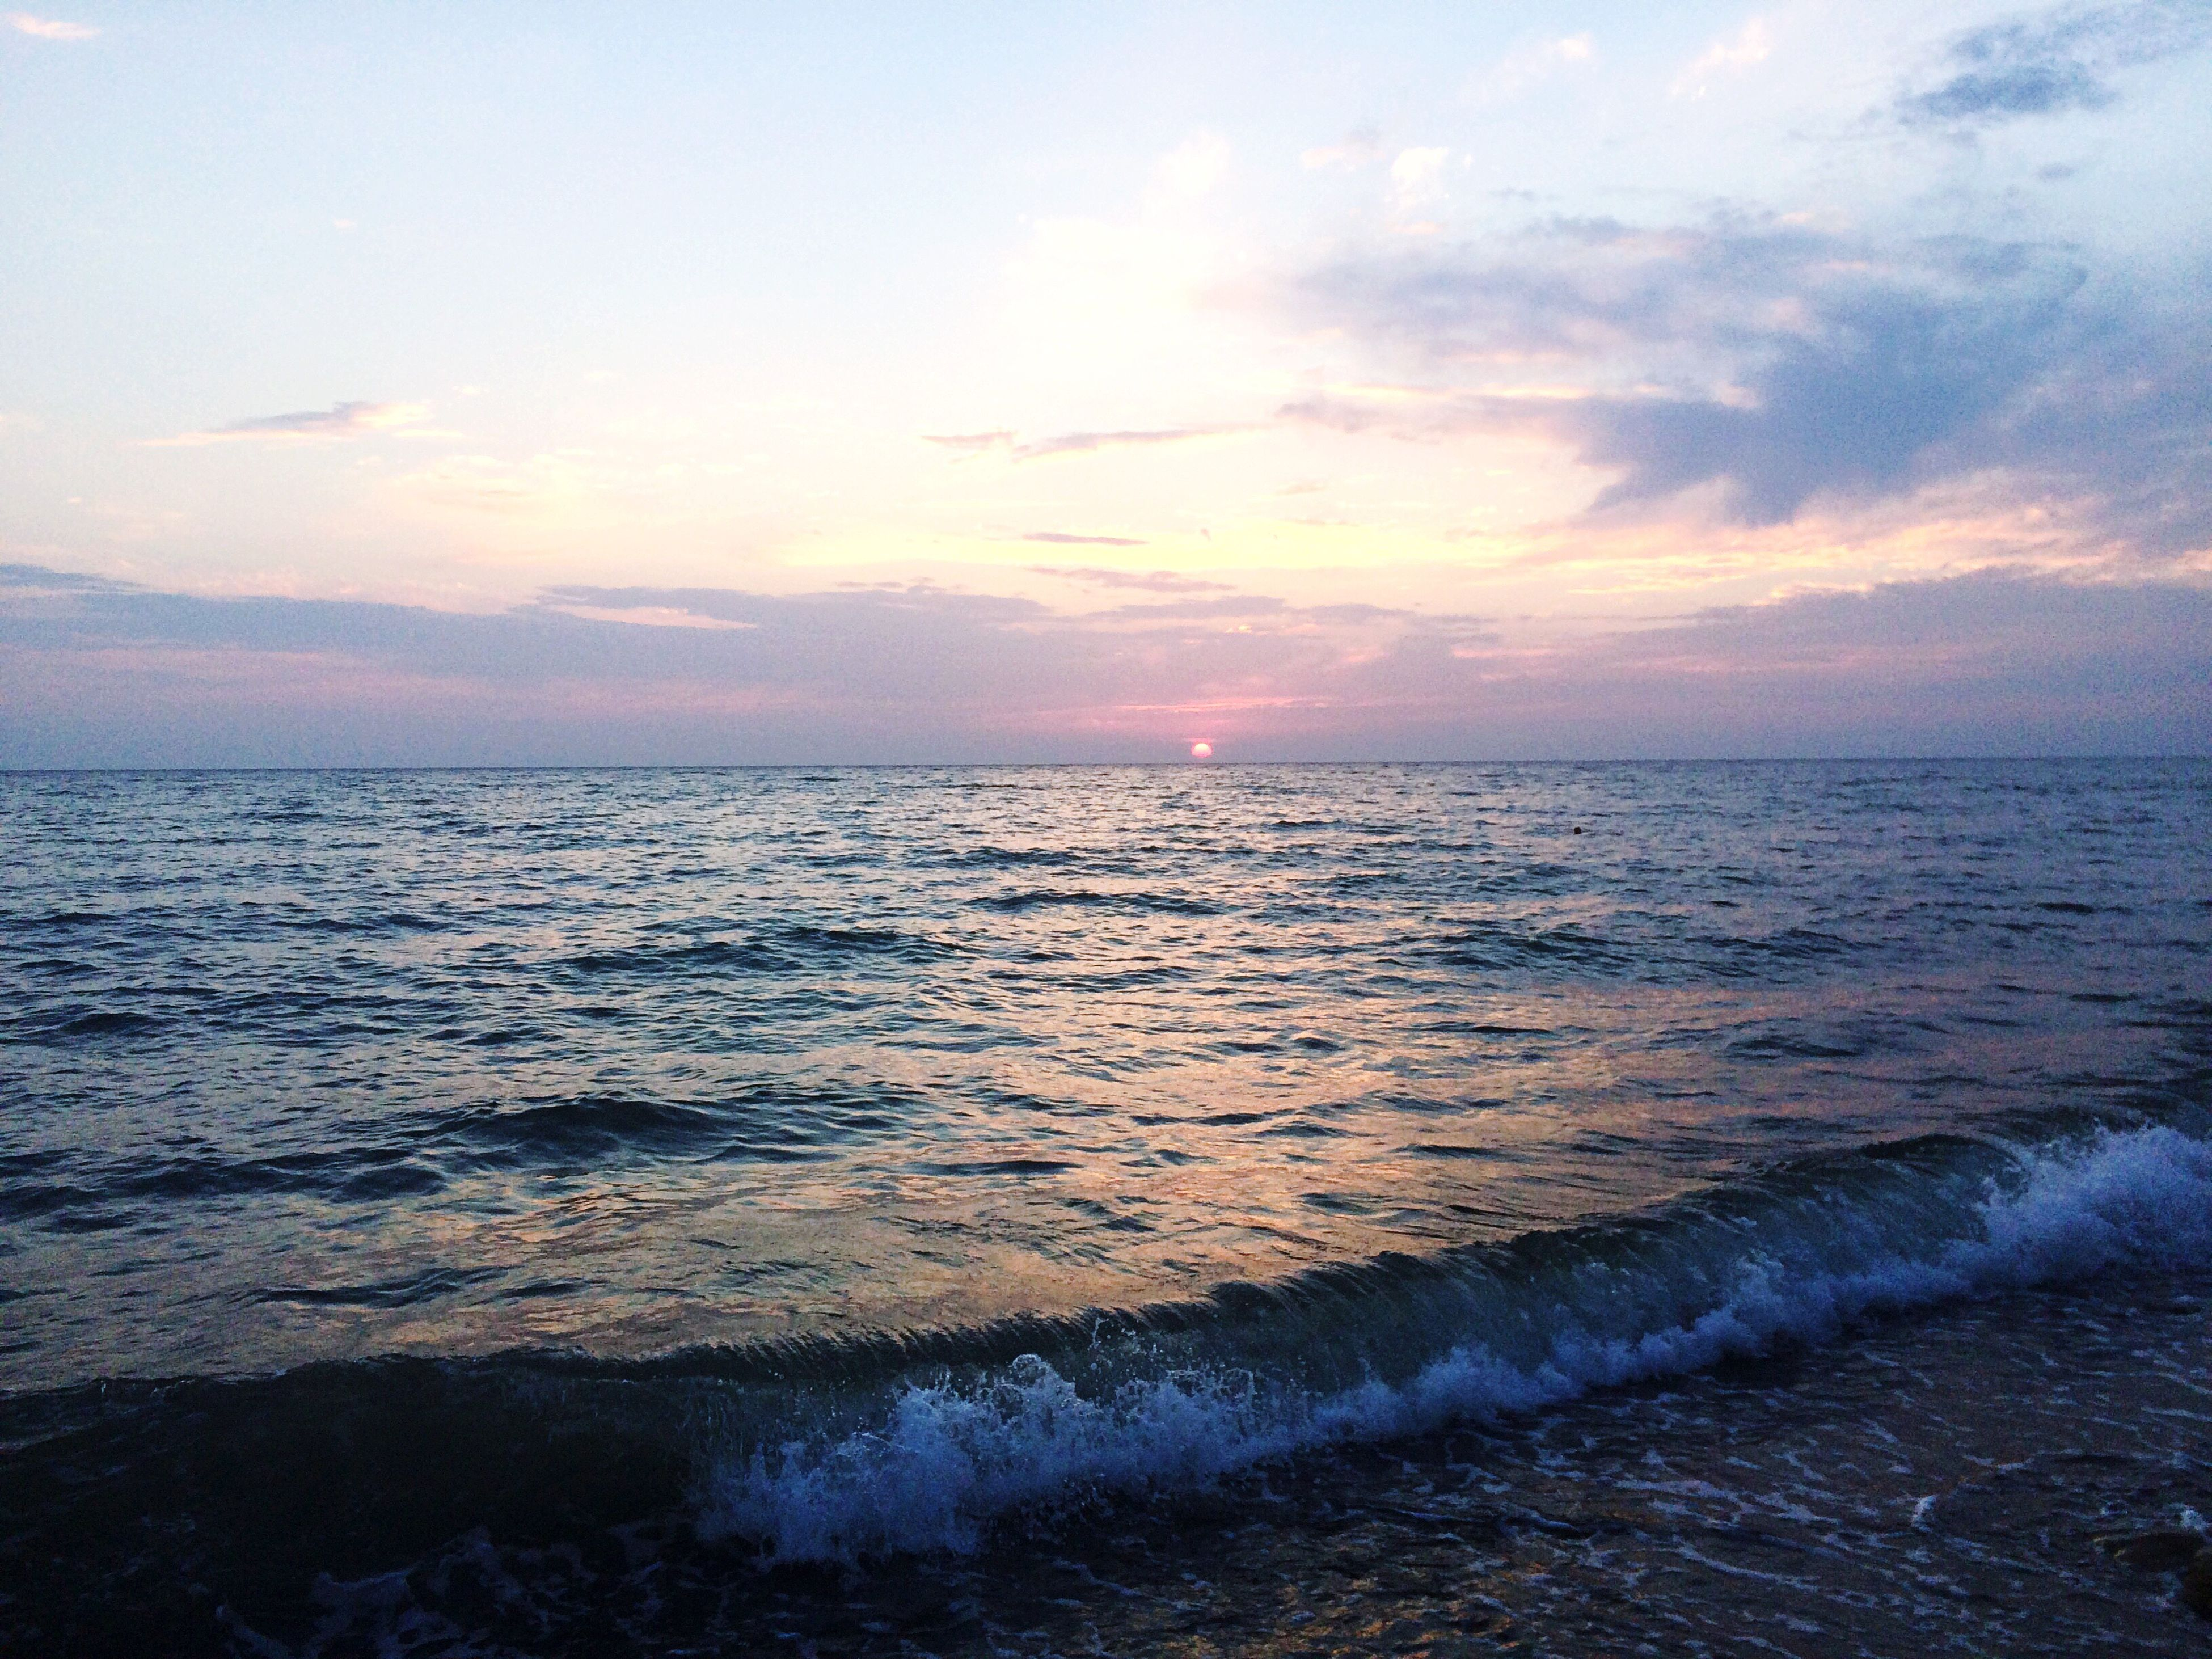 sunset, sea, reflection, beach, sky, nature, horizon over water, water, beauty in nature, outdoors, scenics, dramatic sky, no people, sand, day